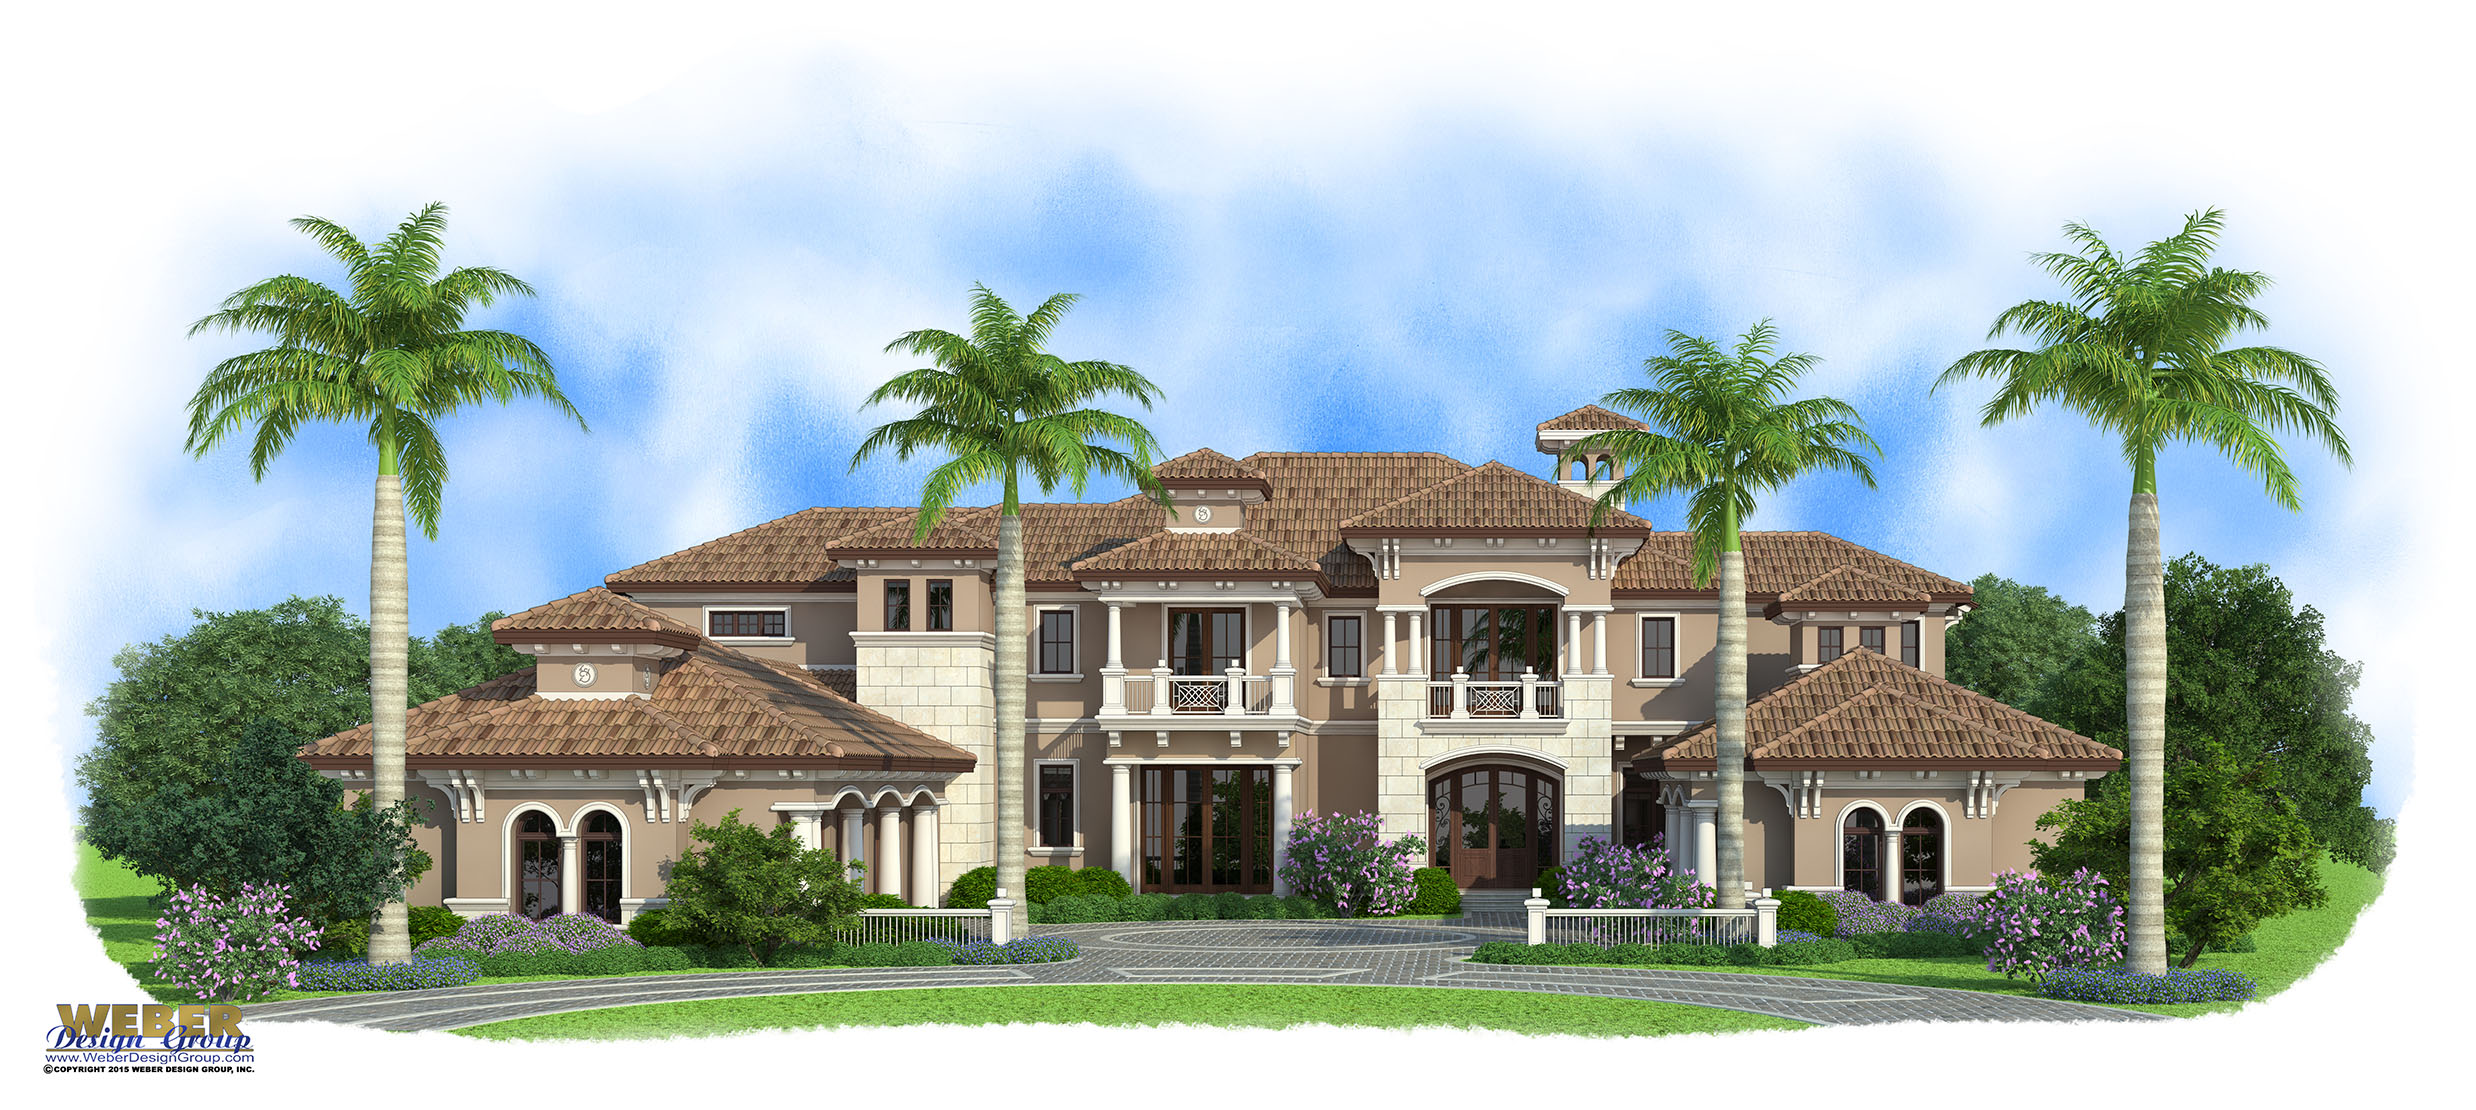 luxury mediterranean house plans luxury house plans modern luxury coastal 20508